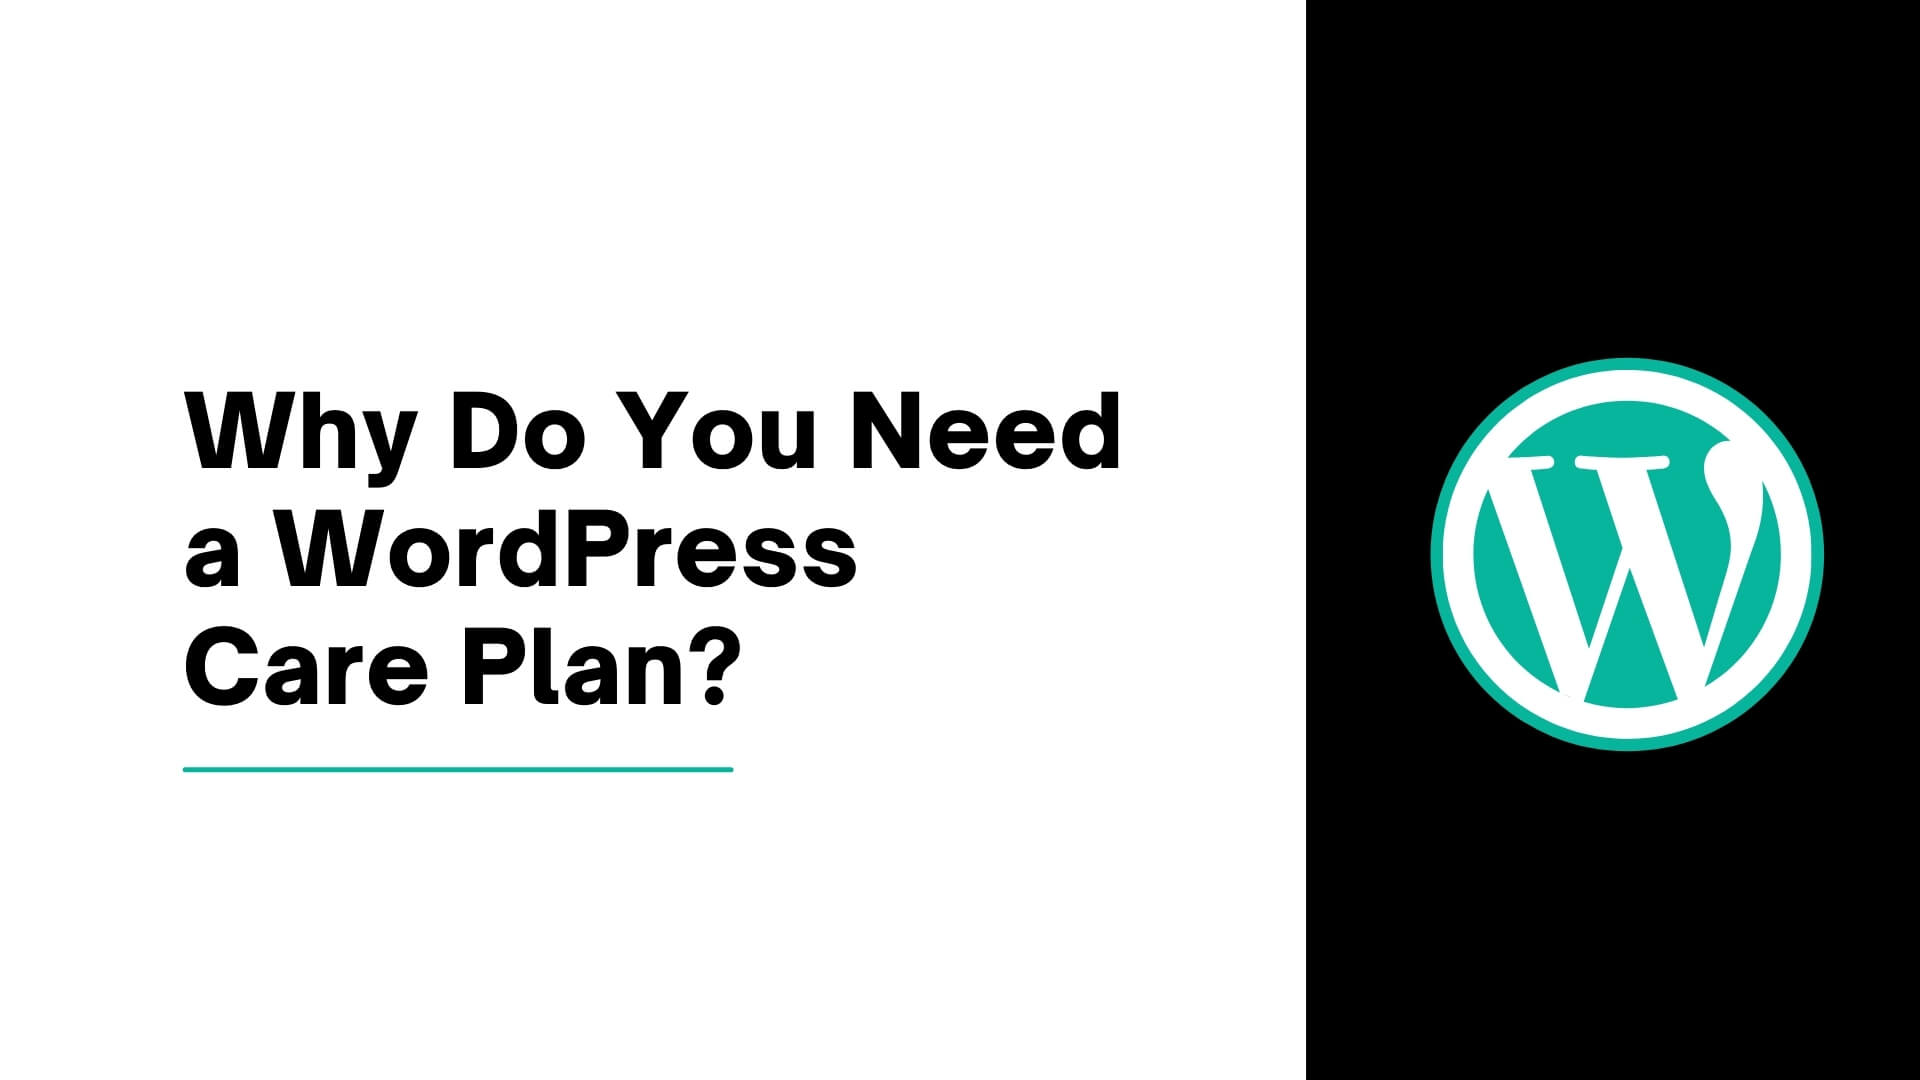 Why Do You Need a WordPress Care Plan